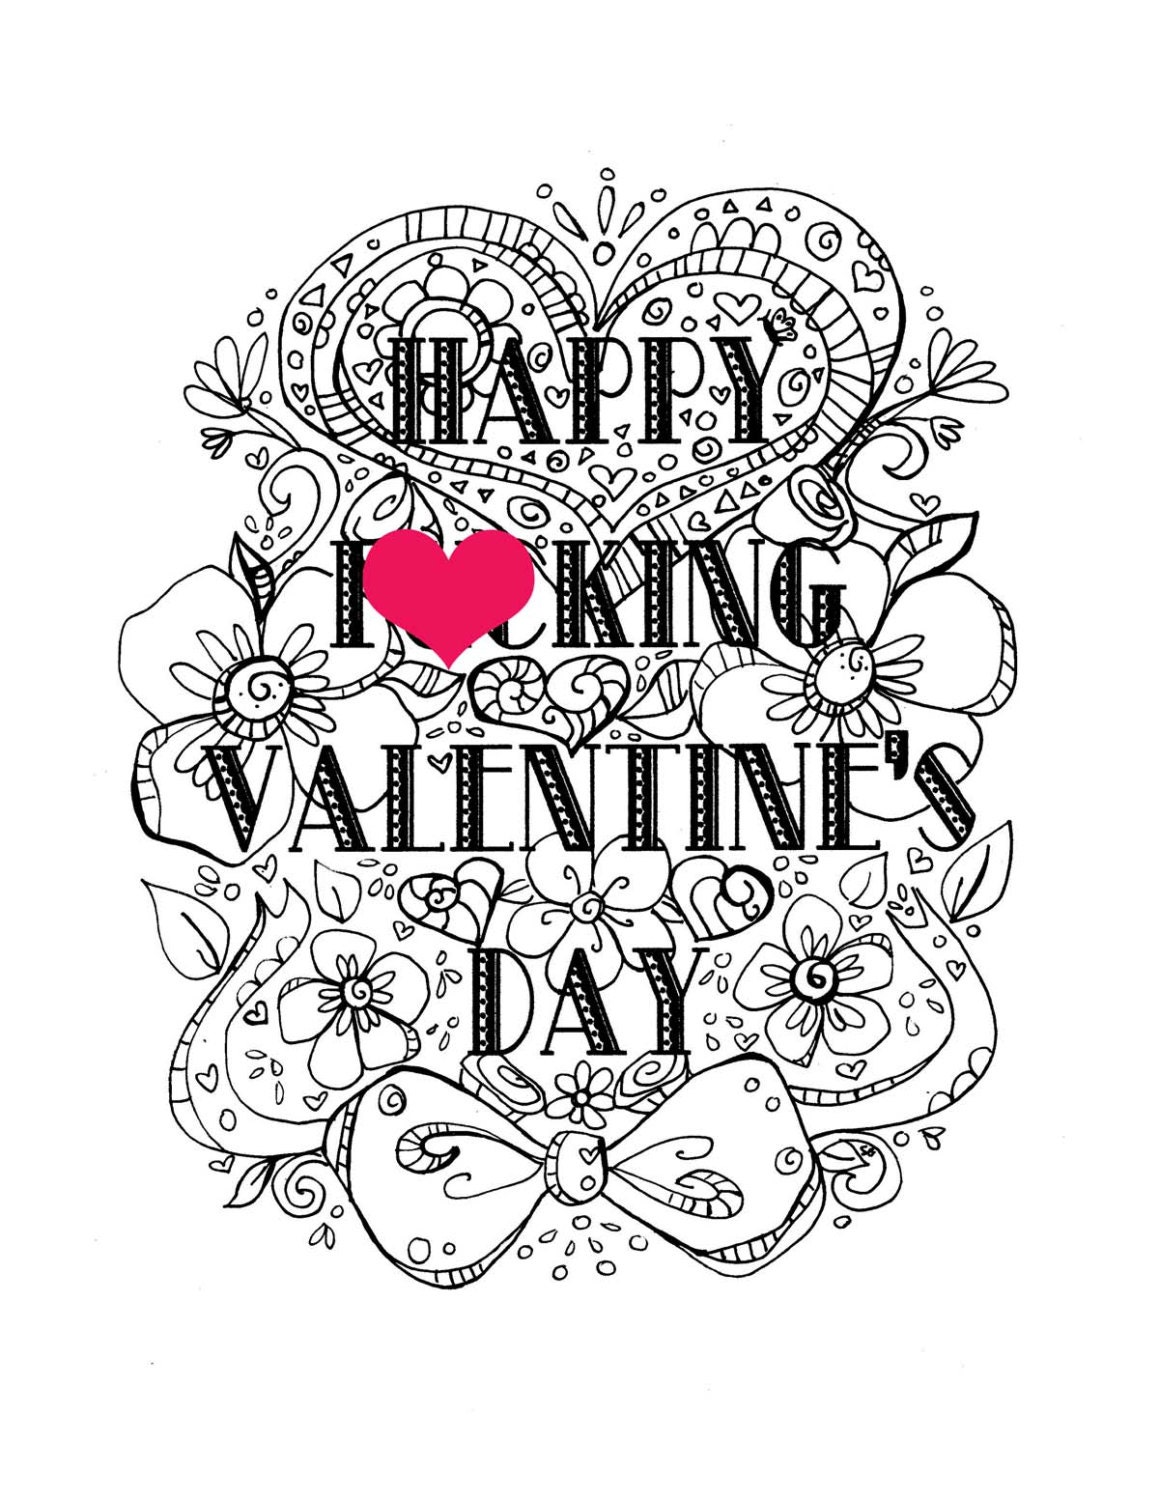 Curse Coloring Page Adult Coloring Page Valentine's Day Valentine Day Coloring Pages For Adults